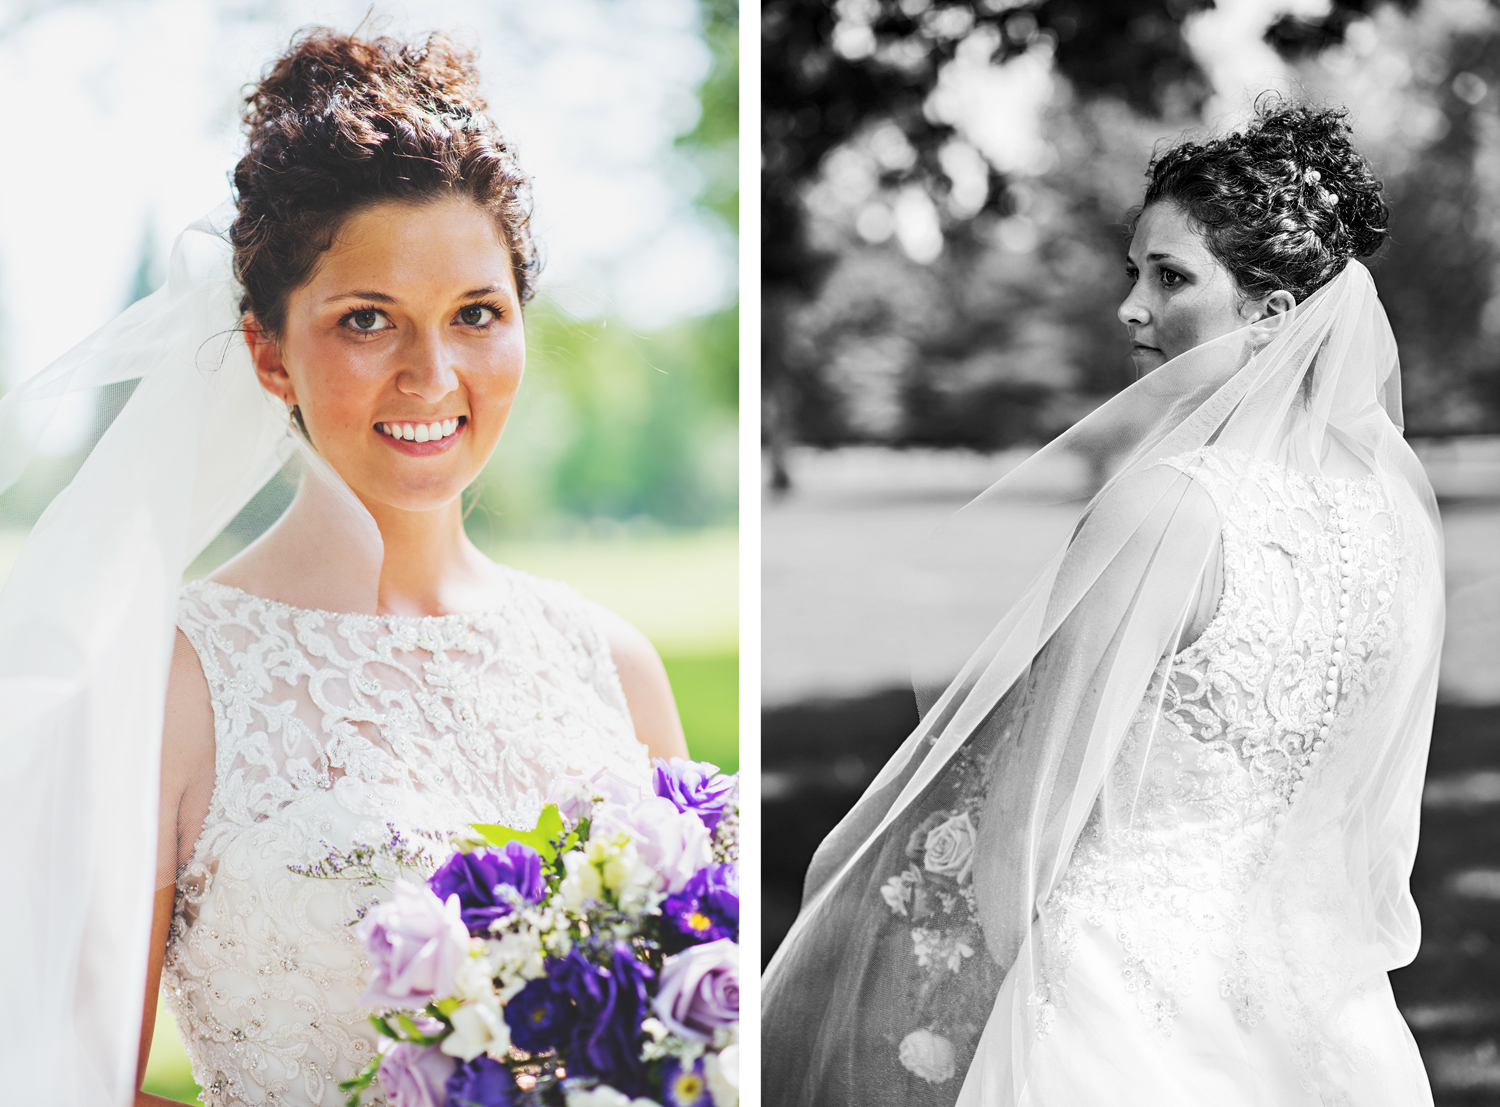 brooklyn_wedding_photographer_brooklyn_michigan_135.jpg